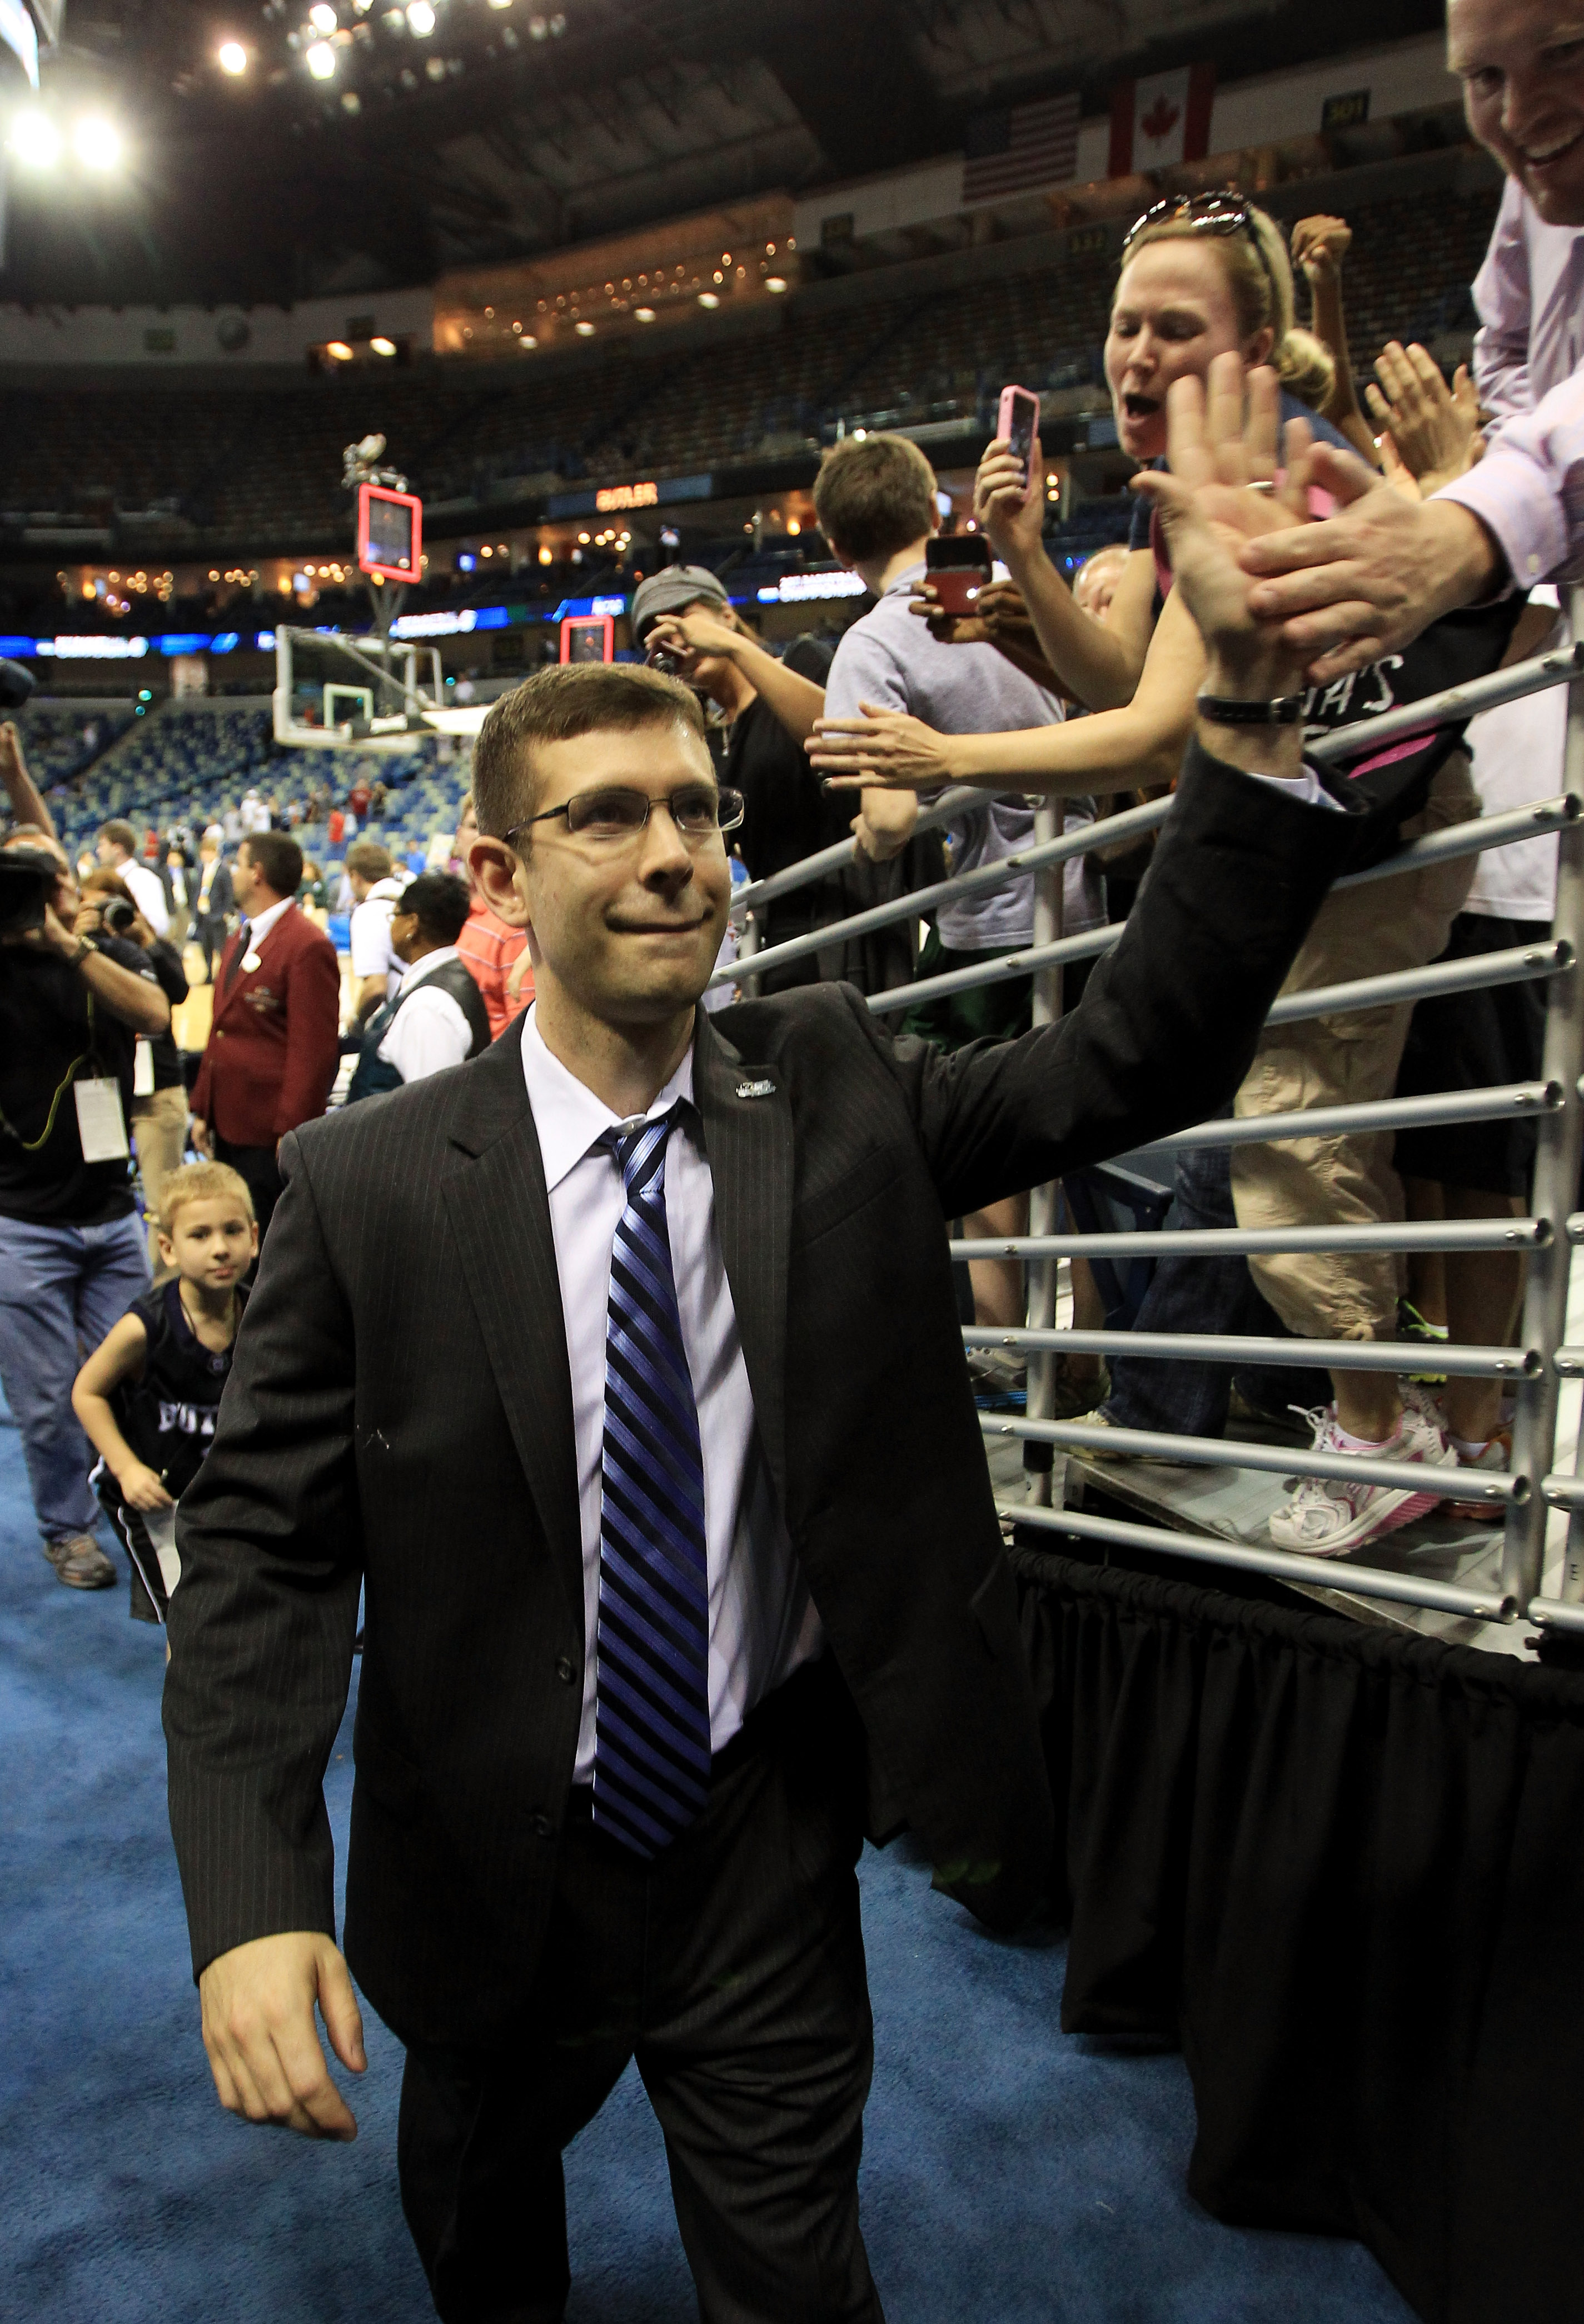 NEW ORLEANS, LA - MARCH 26:  Head coach Brad Stevens of the Butler Bulldogs celebrates with fans after they defeated the Florida Gators 74 to 71 in overtime during the Southeast regional final of the 2011 NCAA men's basketball tournament at New Orleans Ar